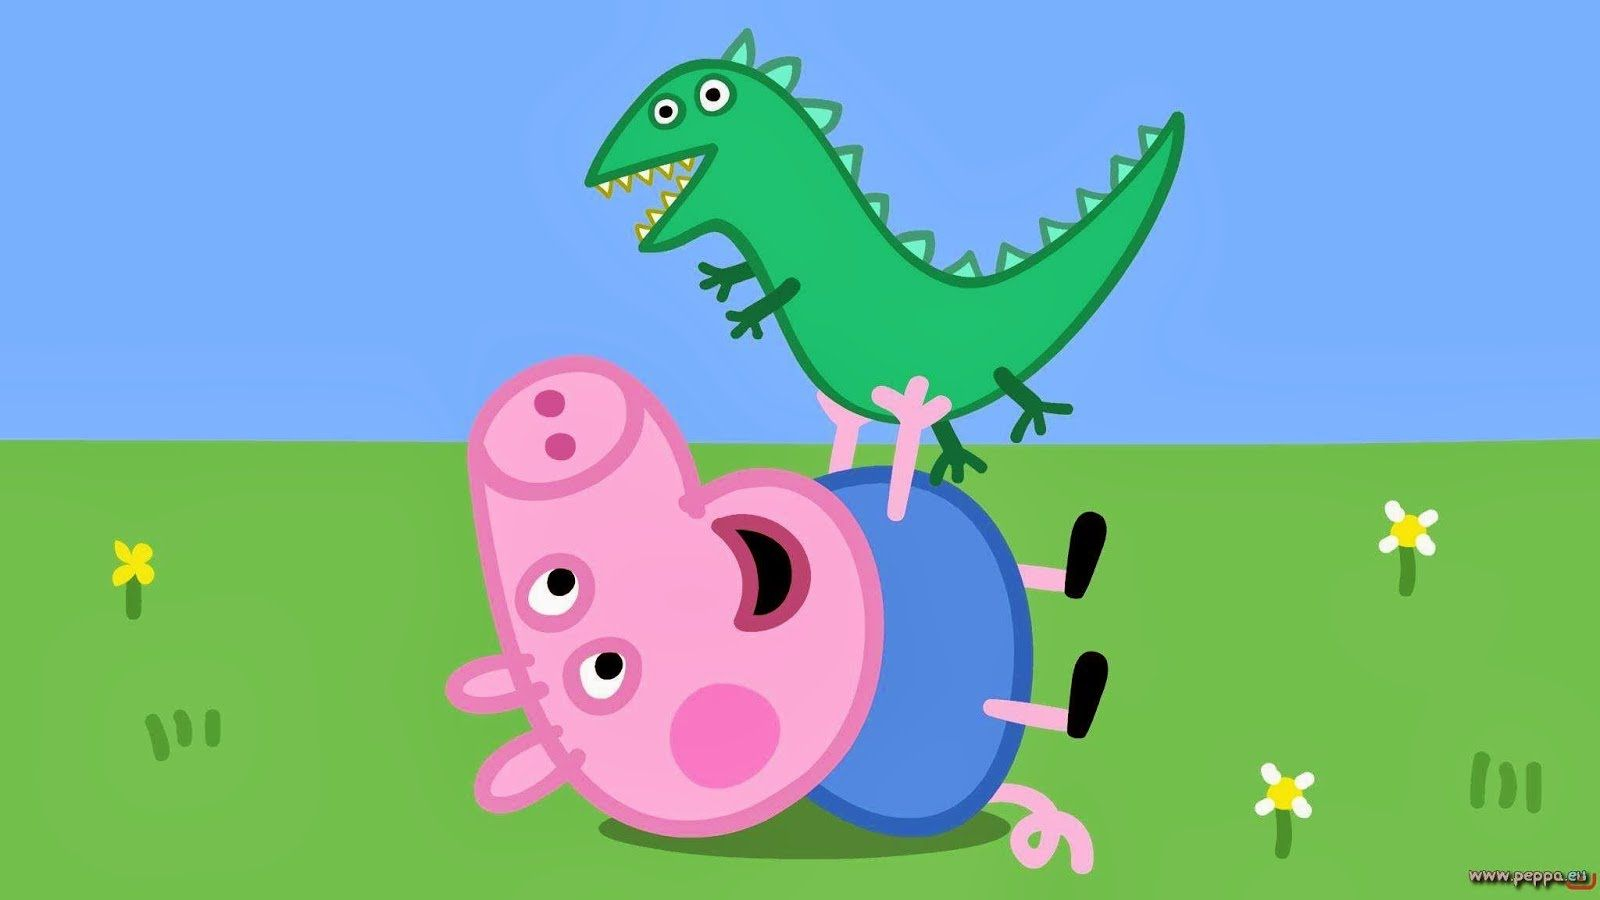 Free Download Peppa Pig Playhouse With Mat And 4 Figures And Play Doh Clay 1600x900 For Your Desktop Mobile Tablet Explore 37 Peppa Pig House Wallpapers Peppa Pig Wallpaper